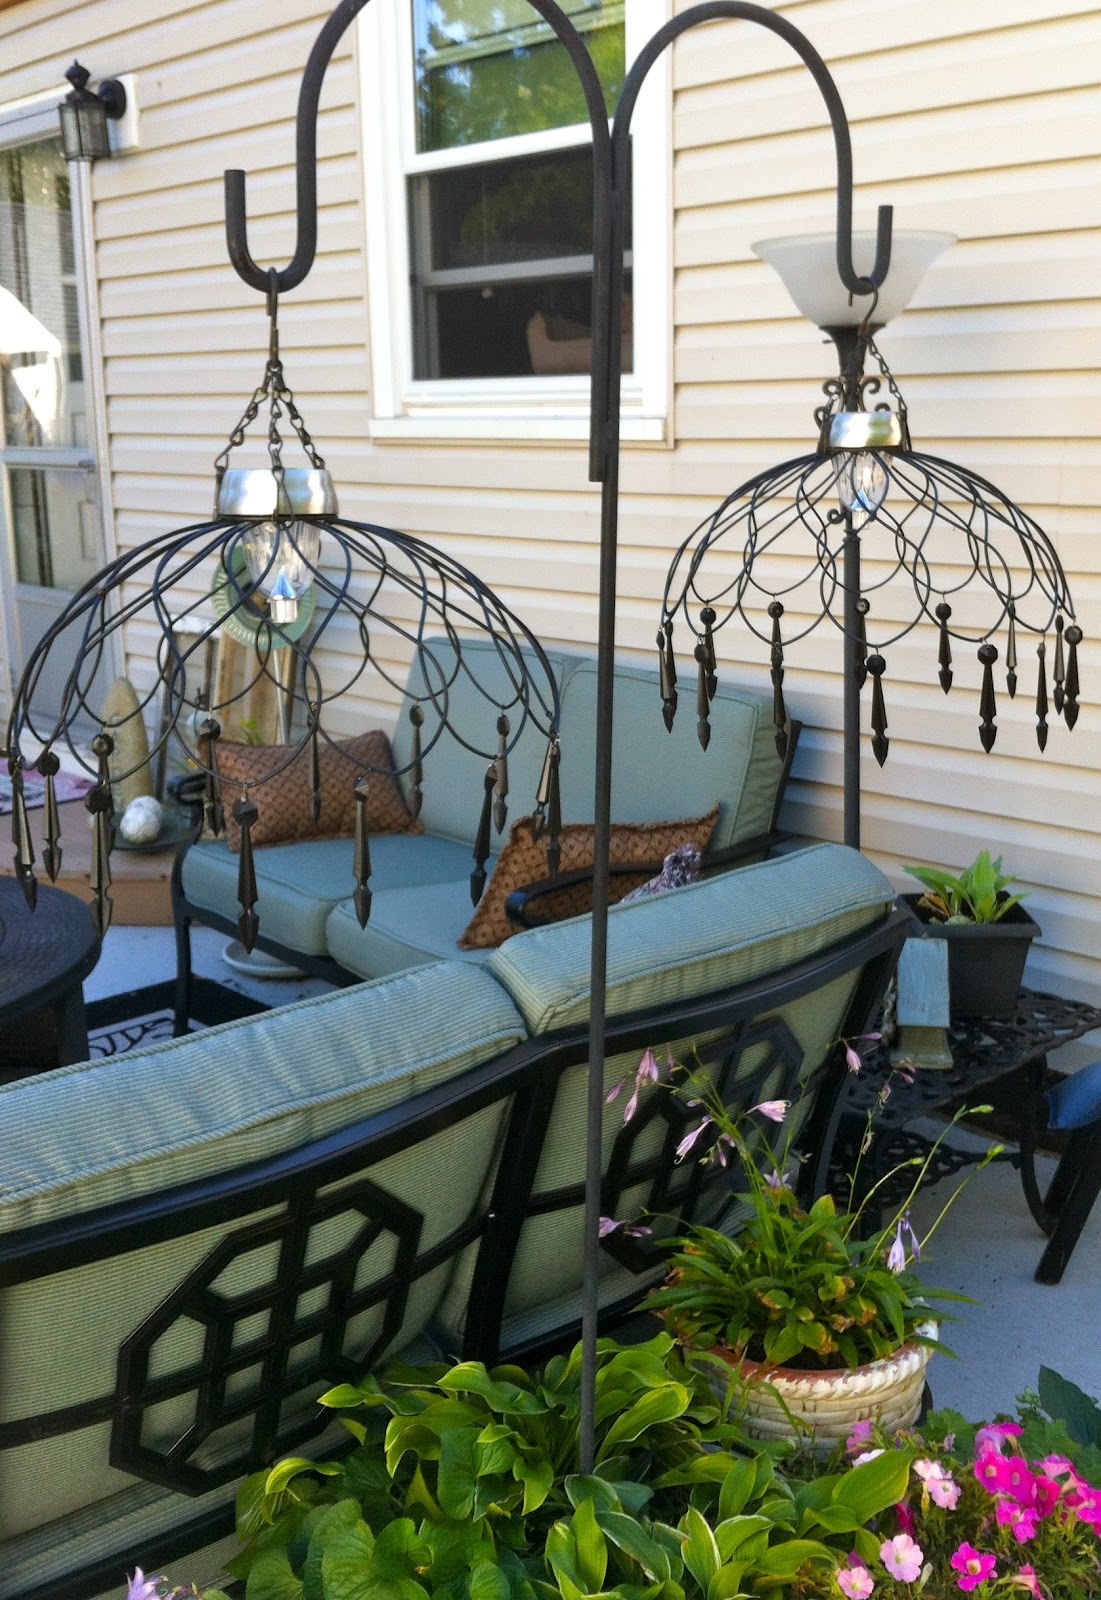 Diy Solar Light Our Garden Path Hanging Chandelier From Wire Baskets